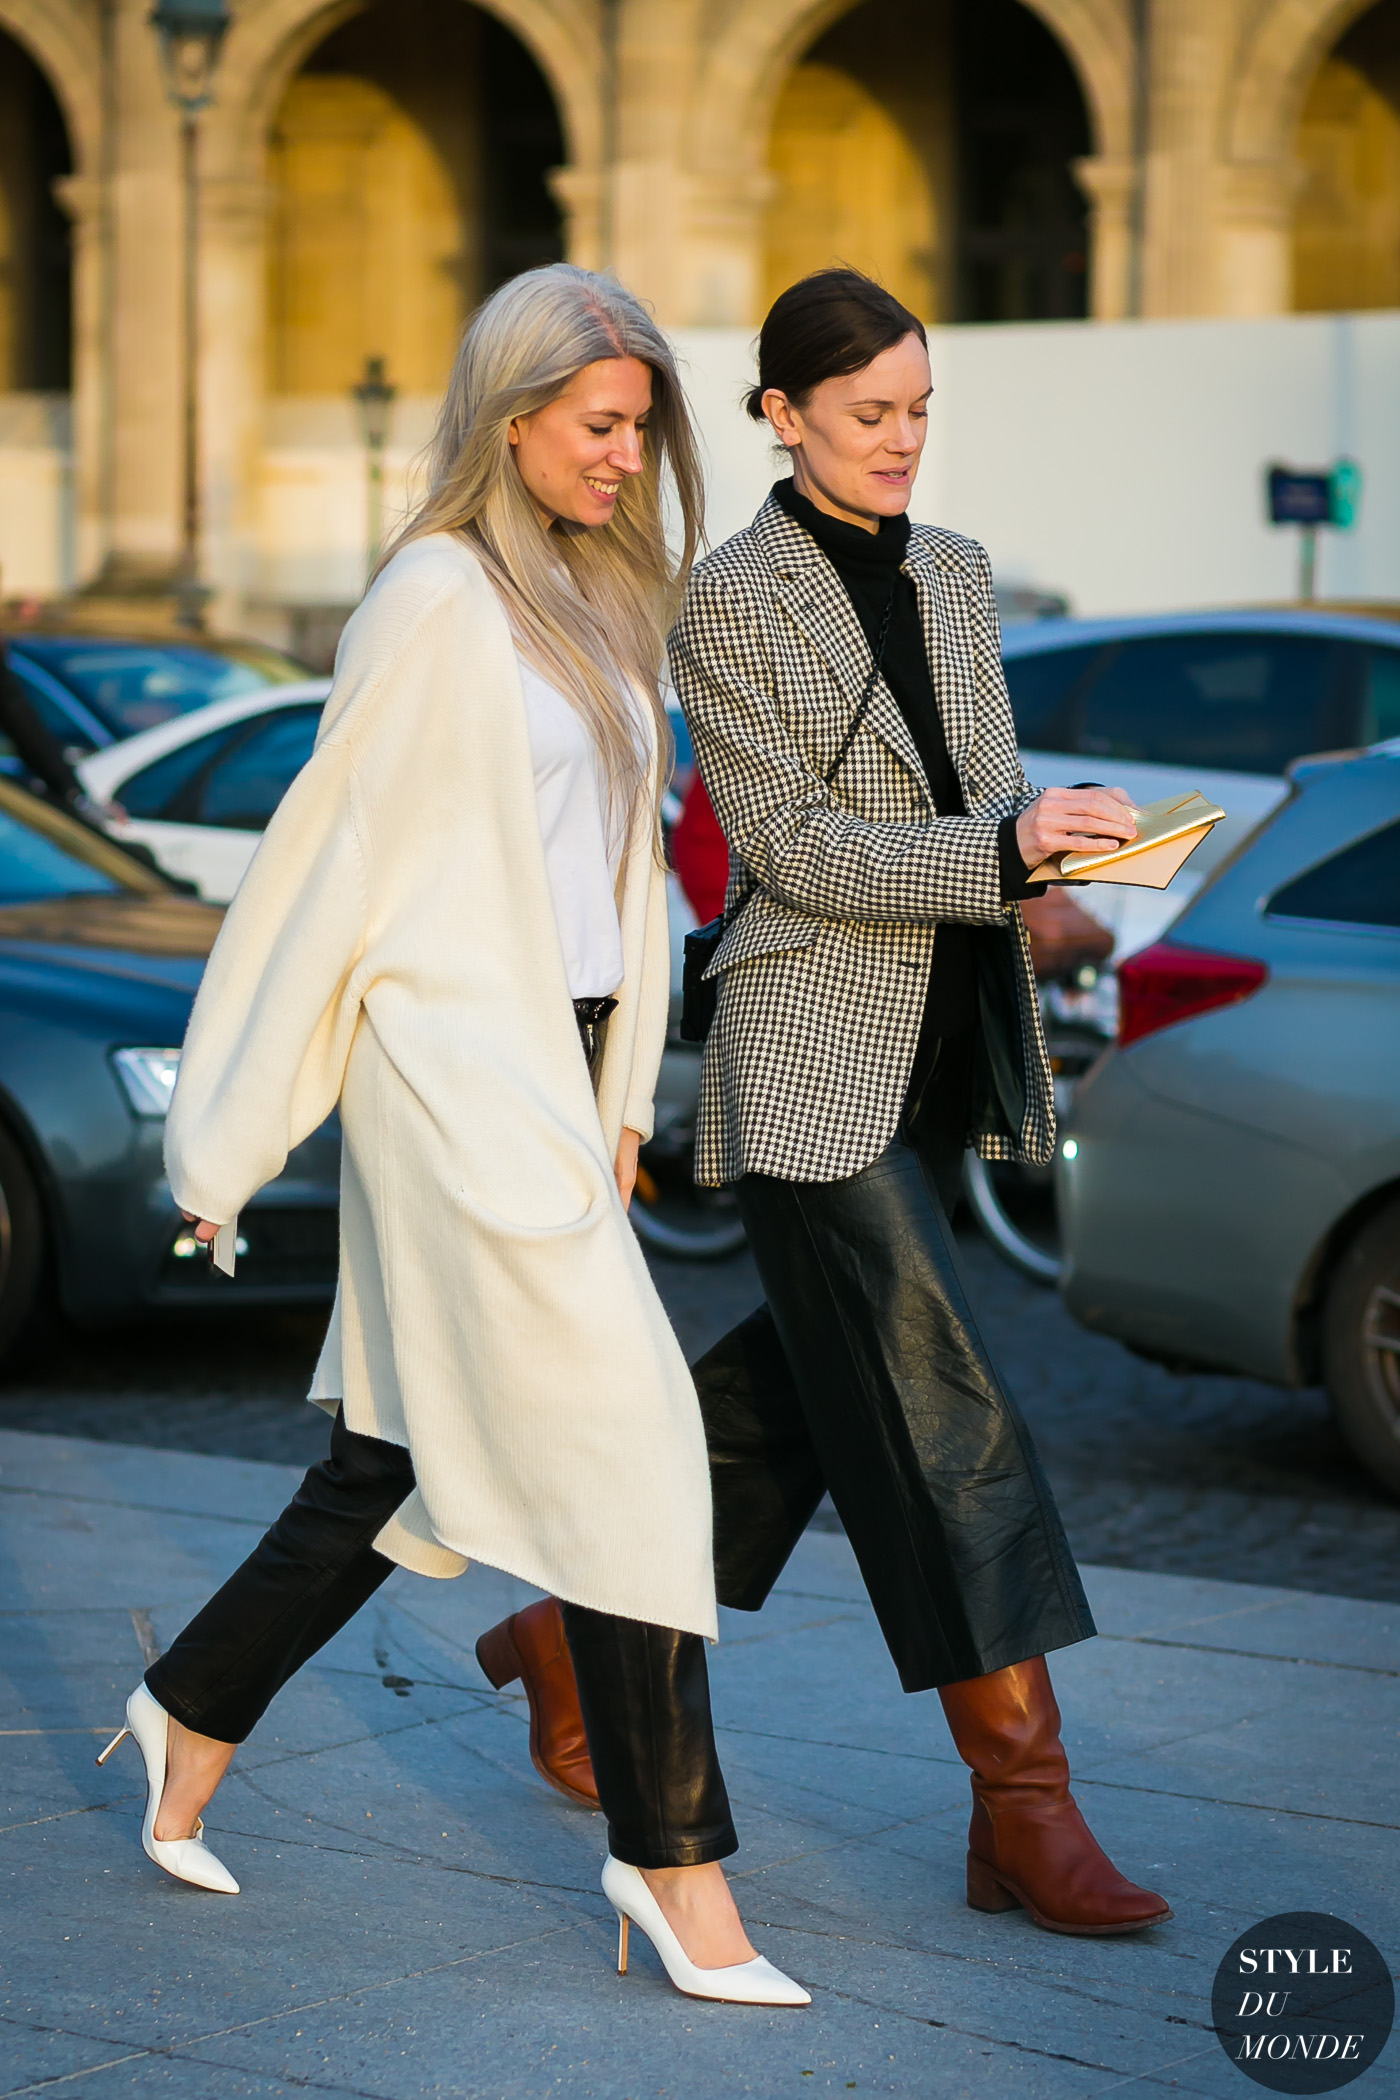 Sarah Harris and Jo Ellison by STYLEDUMONDE Street Style Fashion Photography